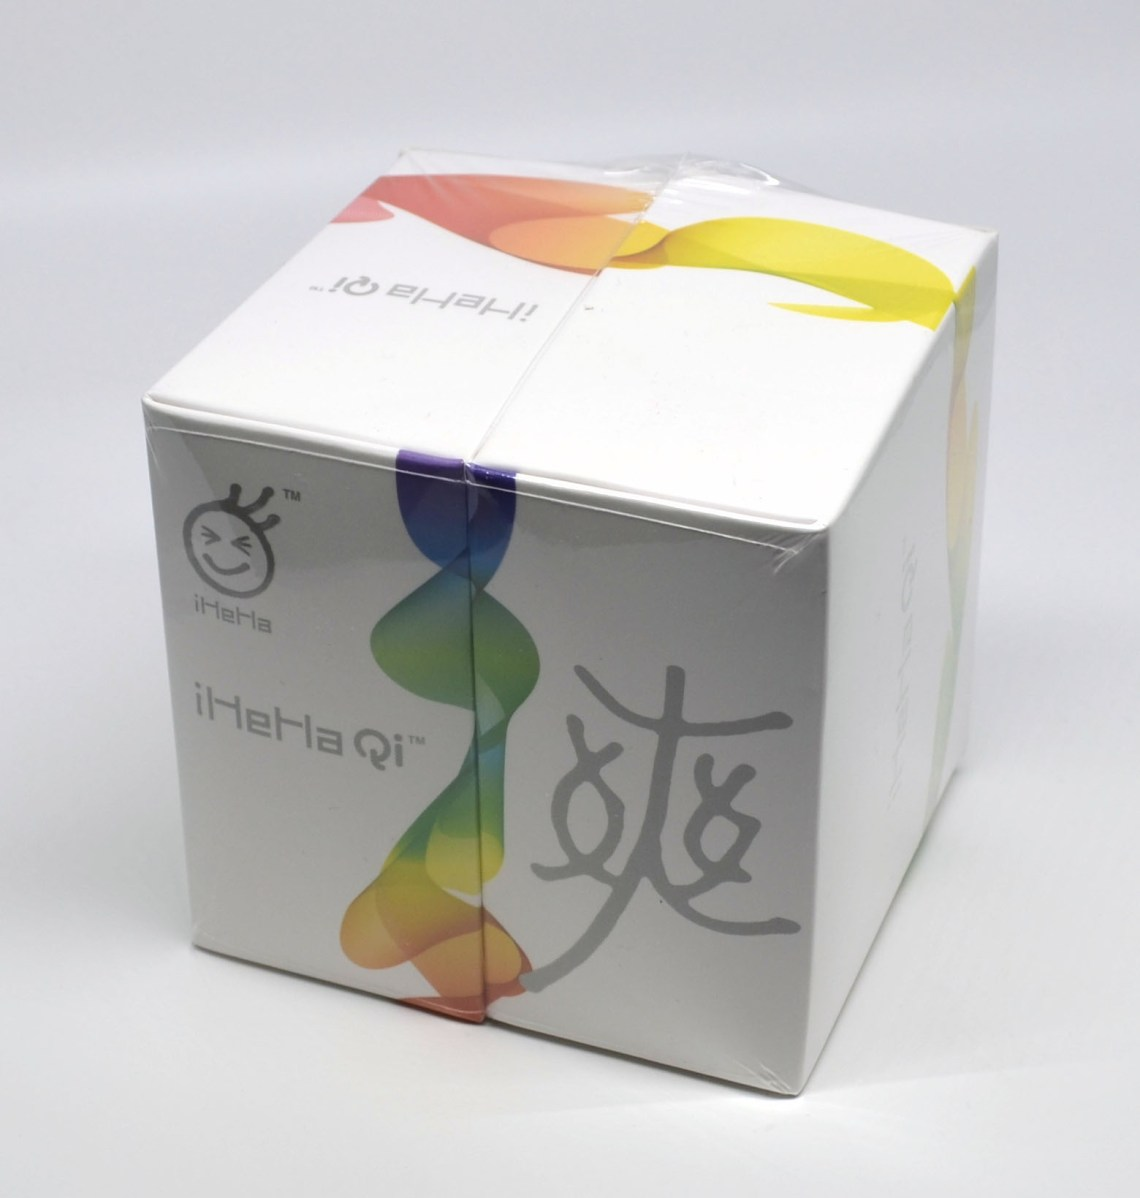 The front of the box.